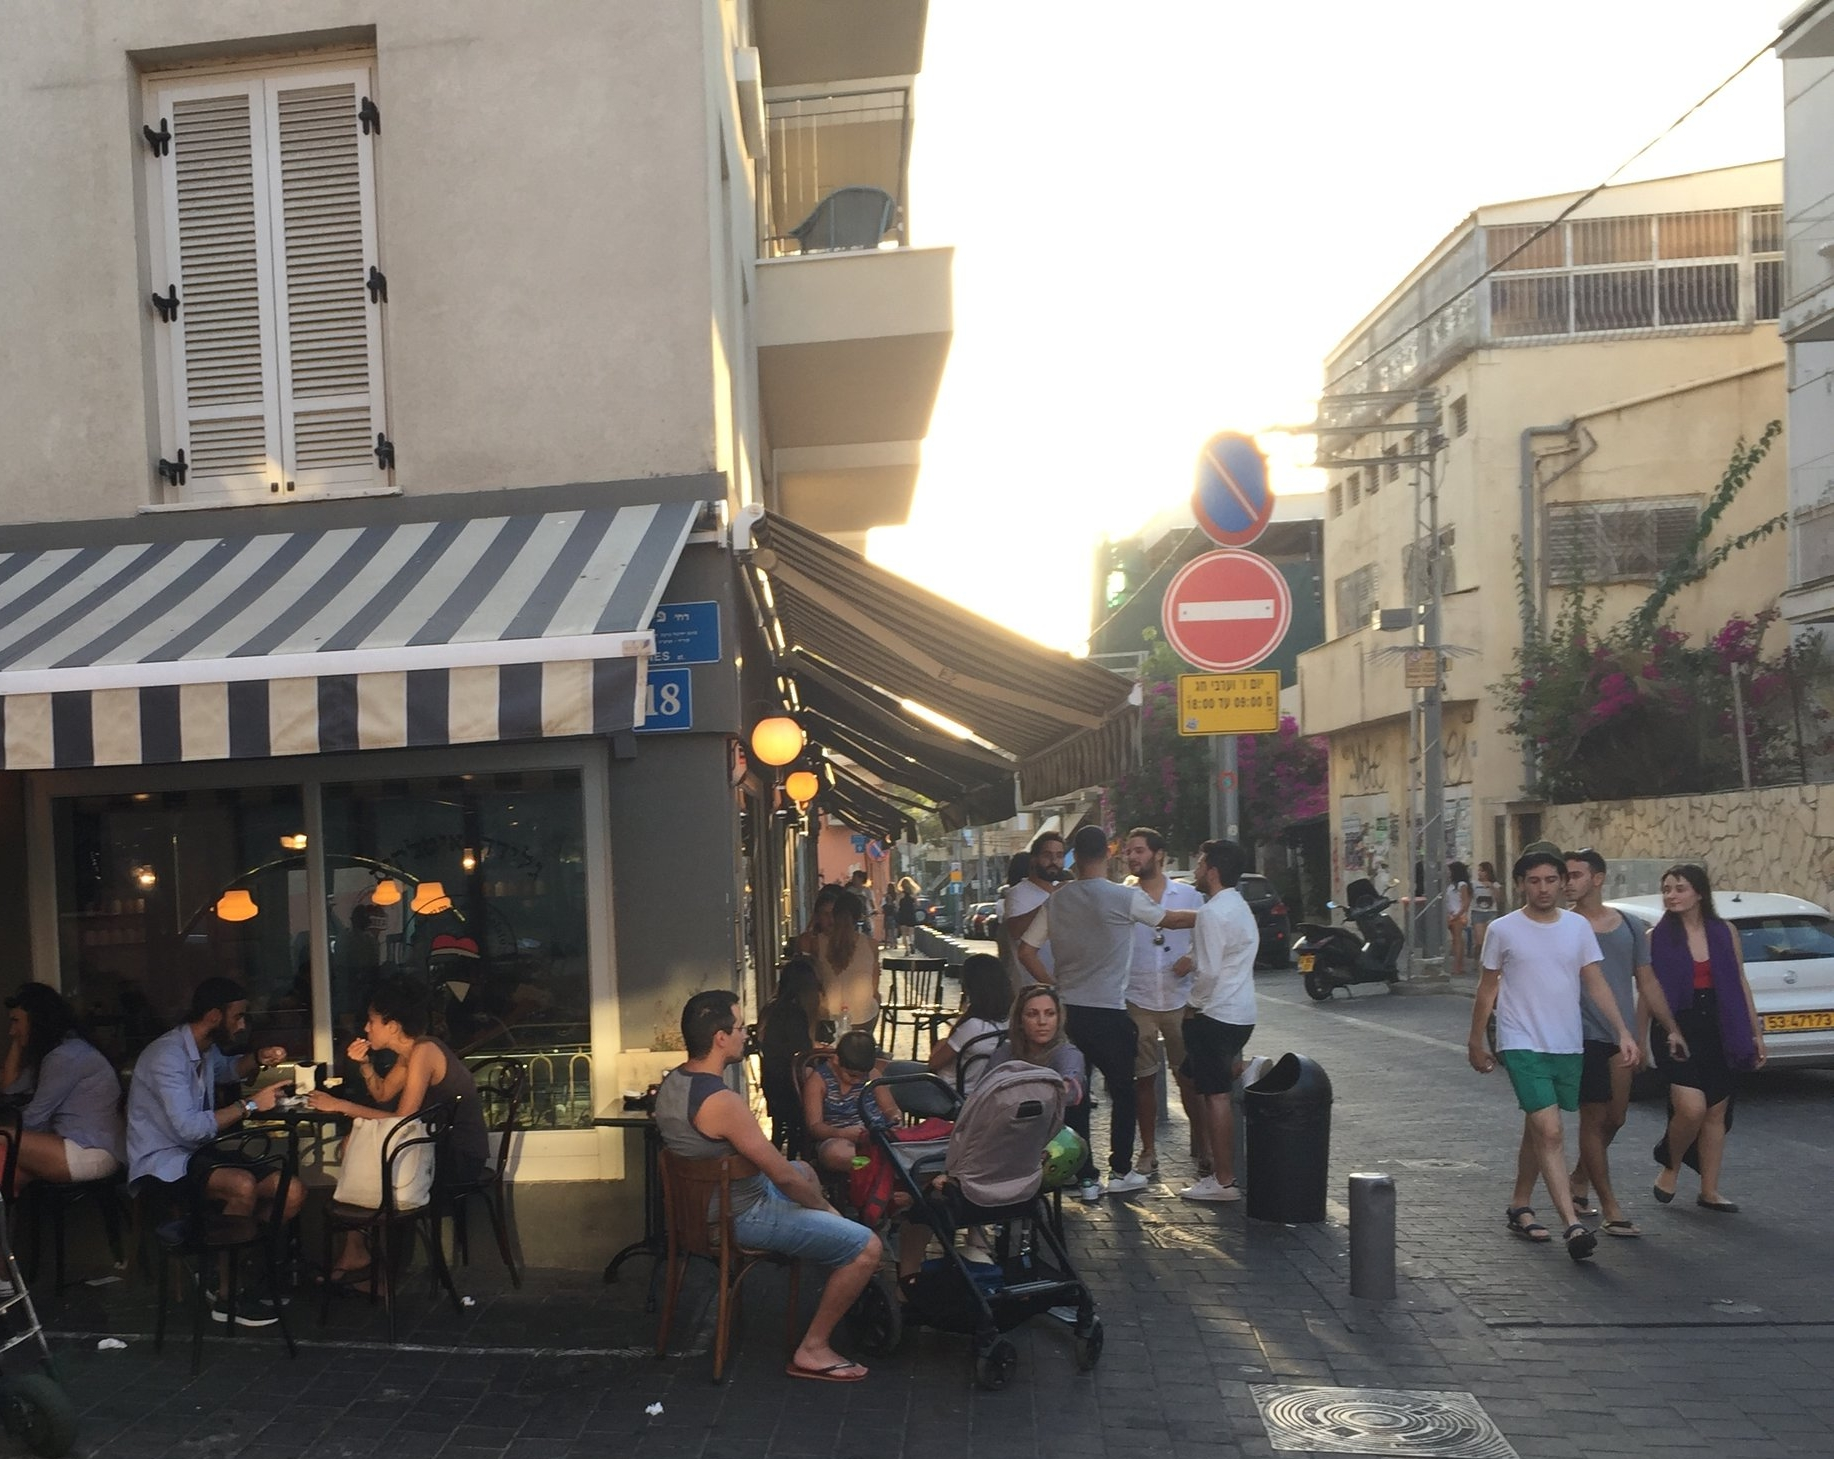 Shabazi st. is a fashionable spot filled with shops and restaurants - this is Shabbat in Neve Tzedek